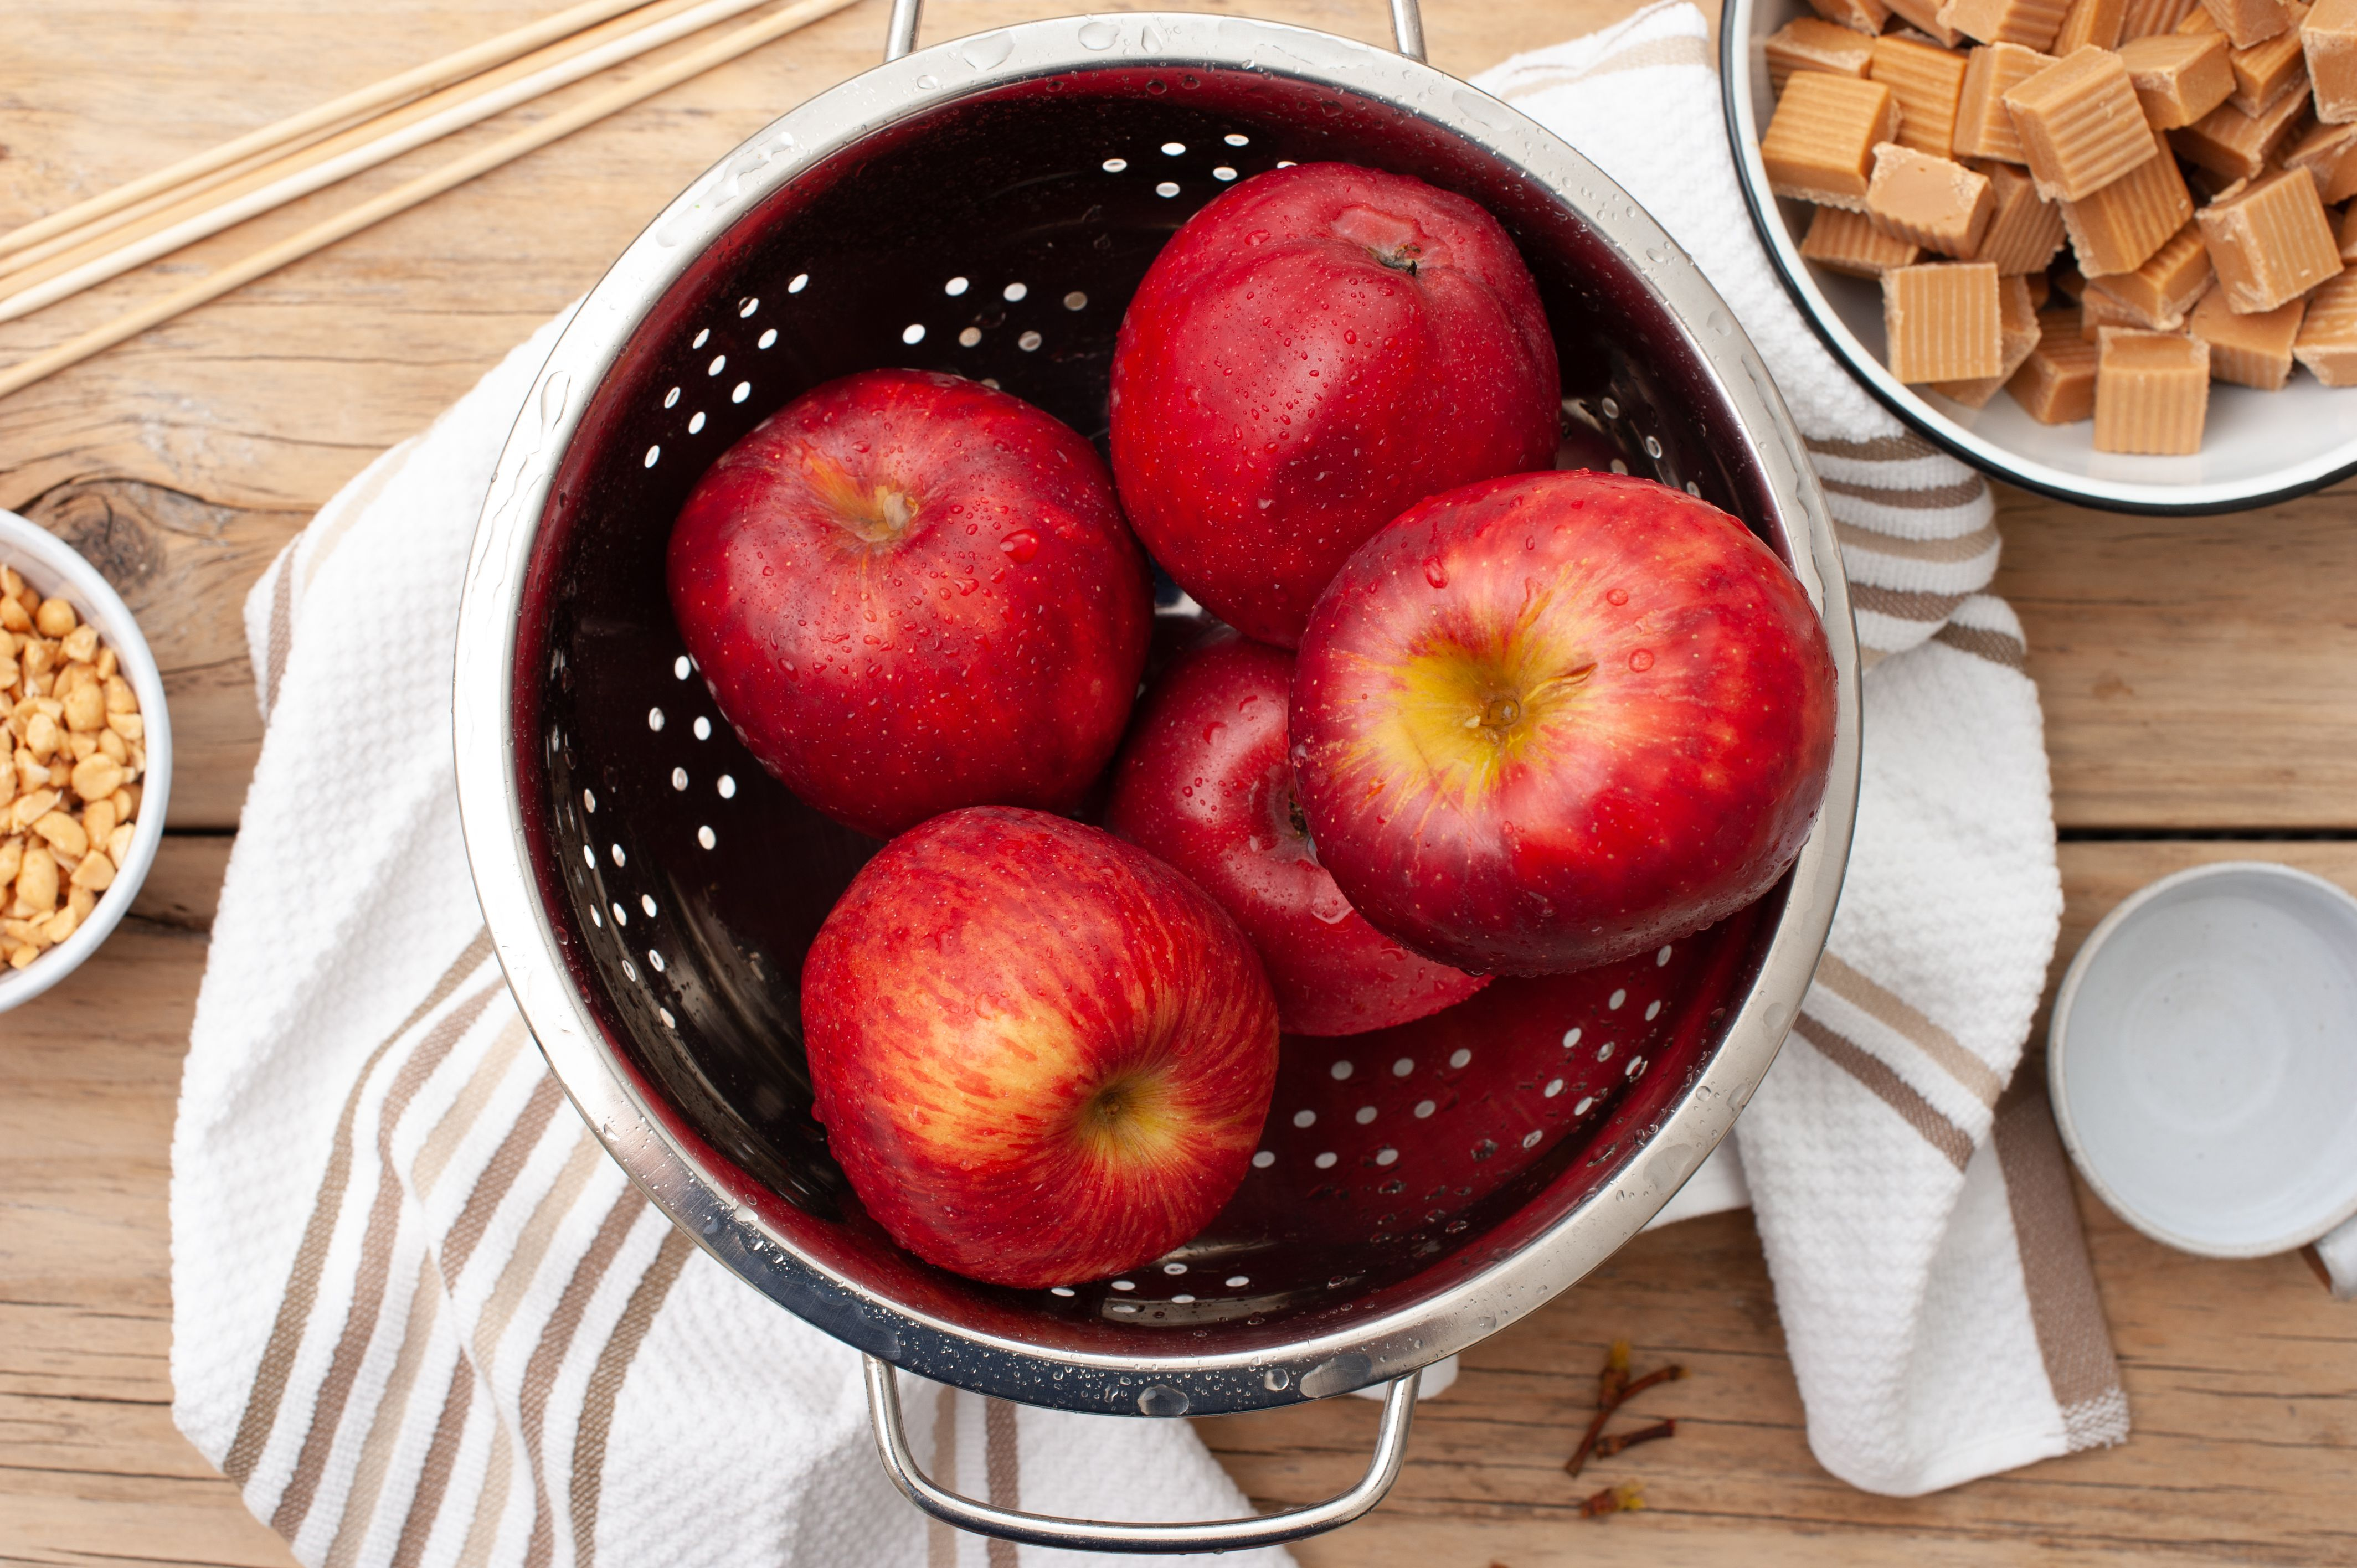 Begin by washing apples